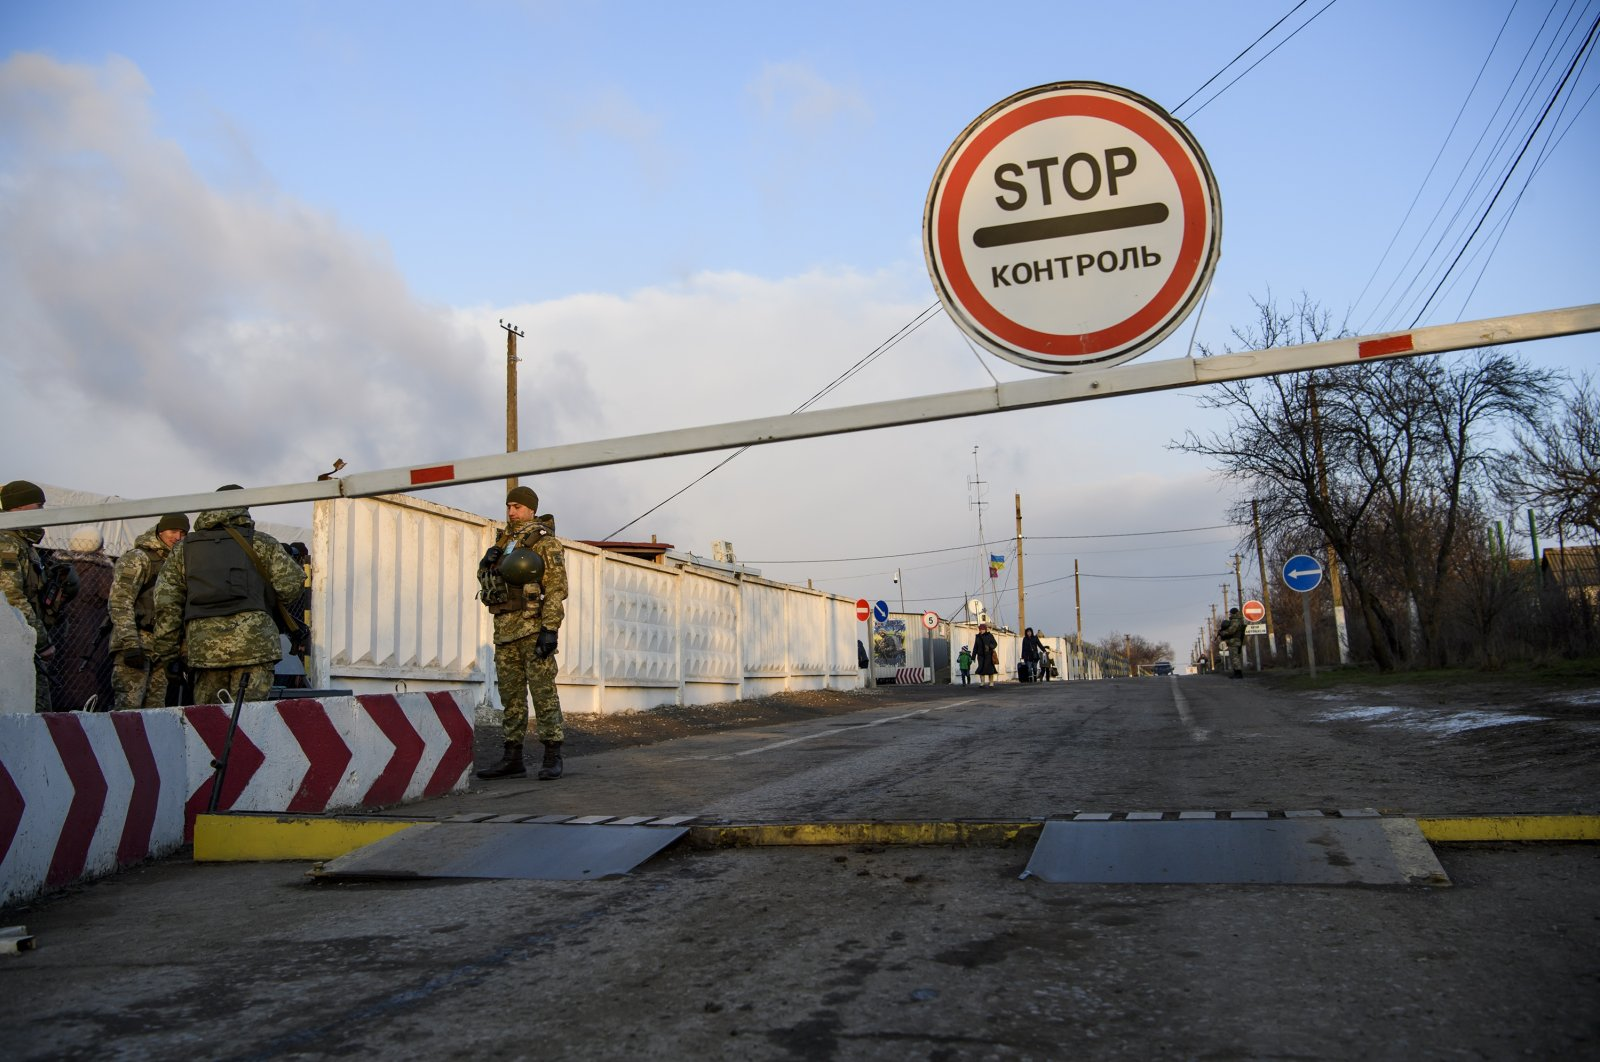 Border guards at the Hnutove checkpoint in Hnutove village, near Mariupol, Ukraine, Jan. 12, 2018. (Getty Images)